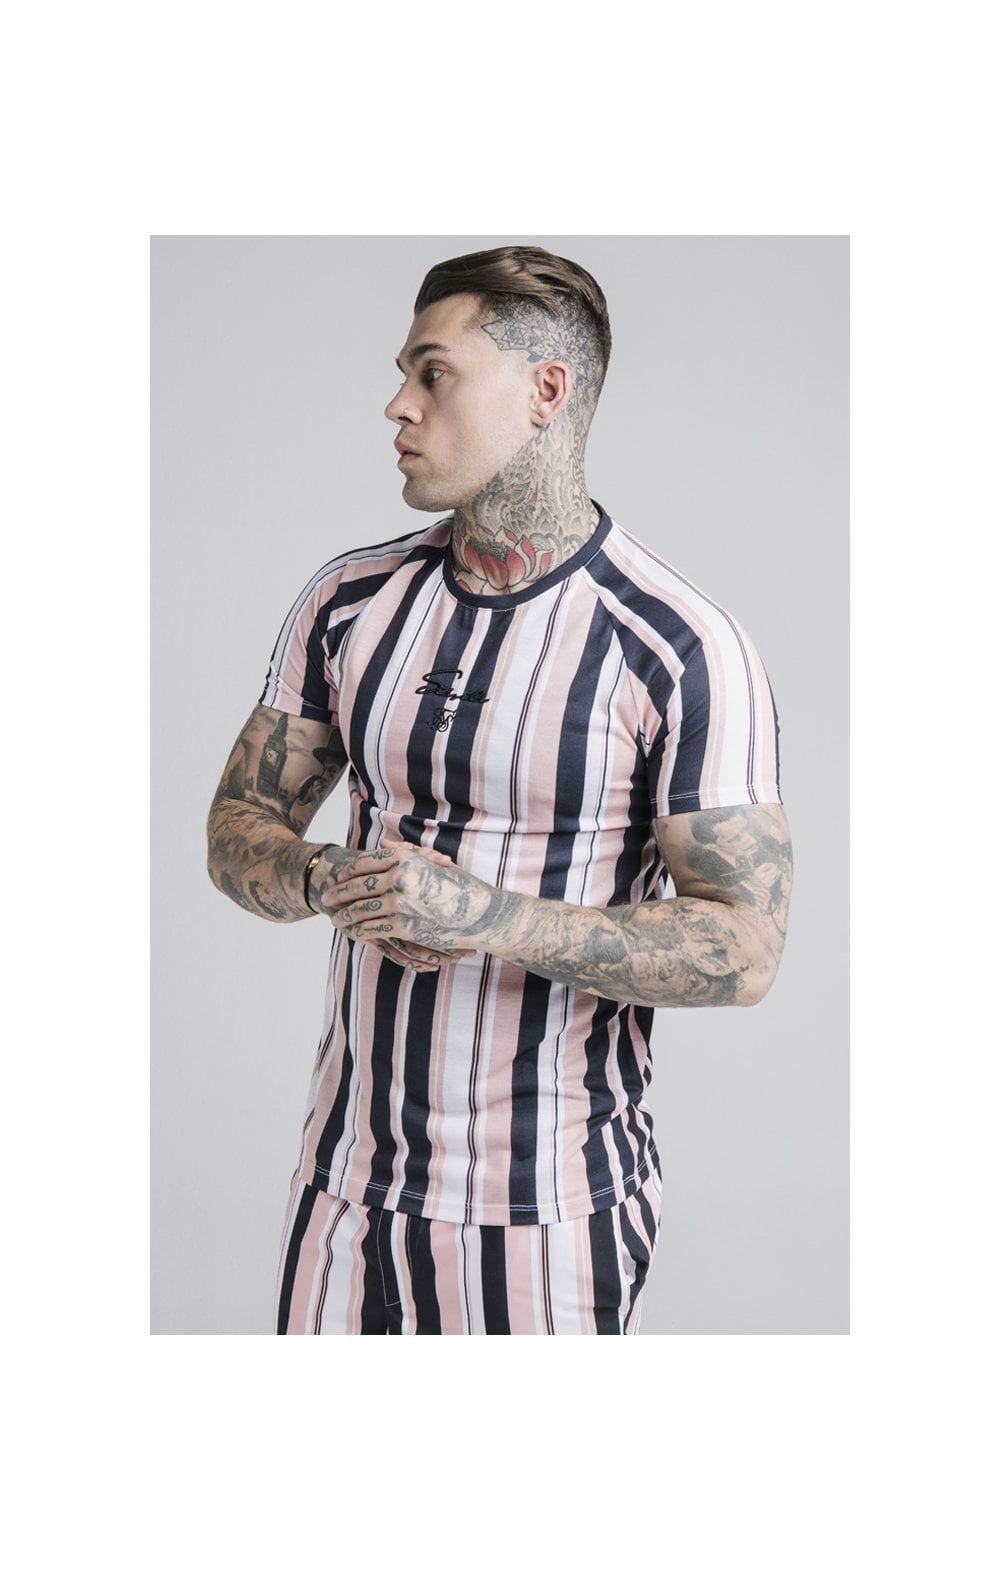 SikSilk Raglan Tech Tee - Navy, Pink & White